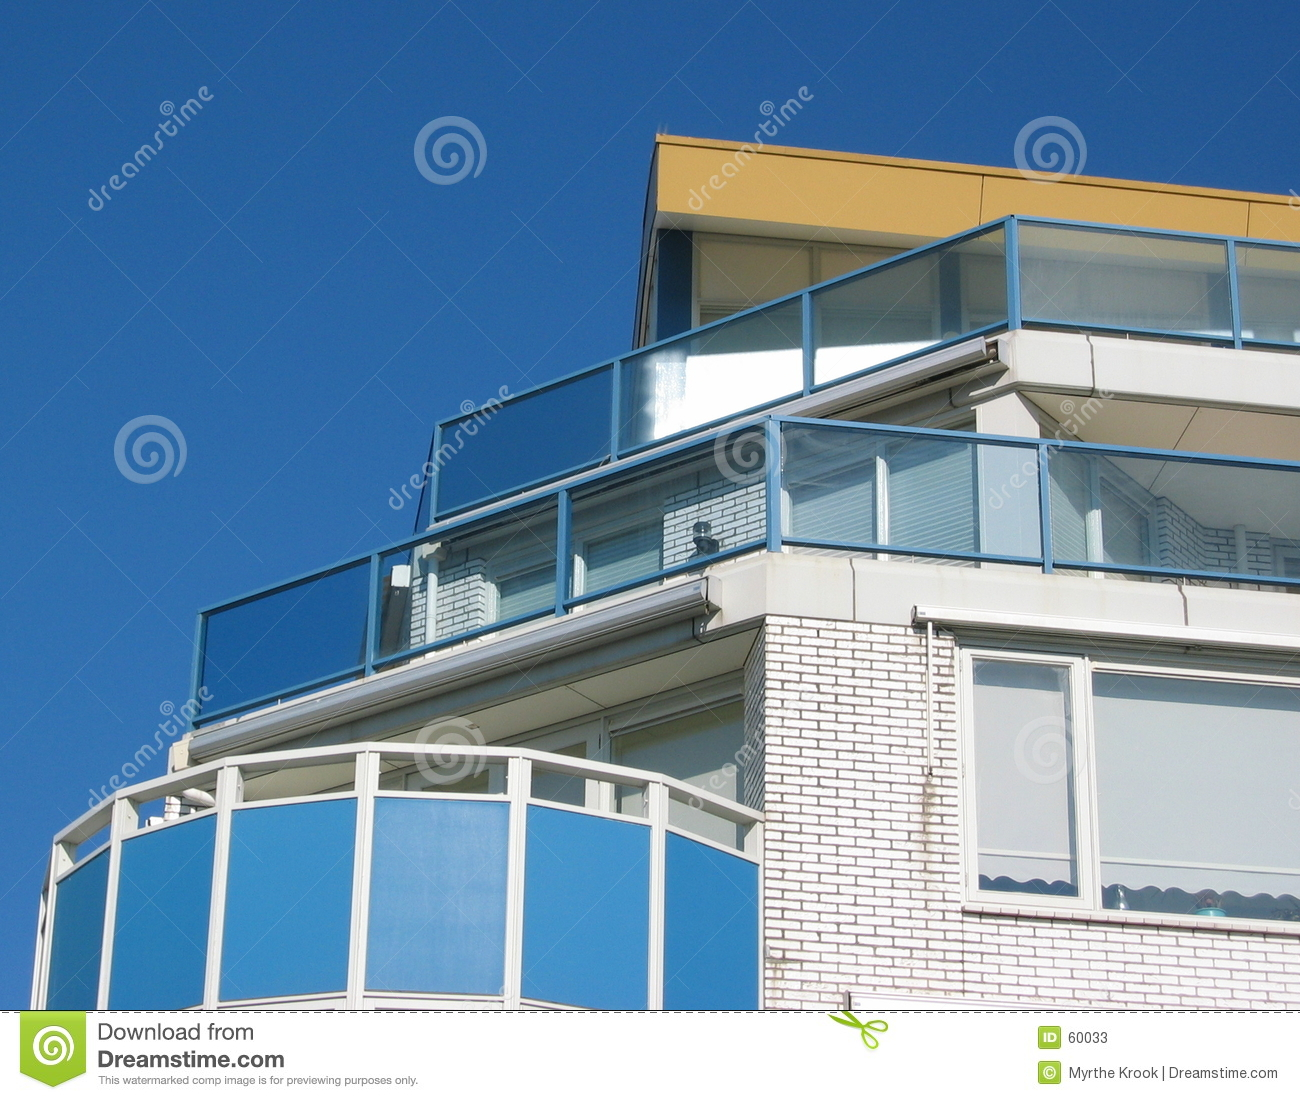 Seaside Appartment Building Stock Photos Image 60033